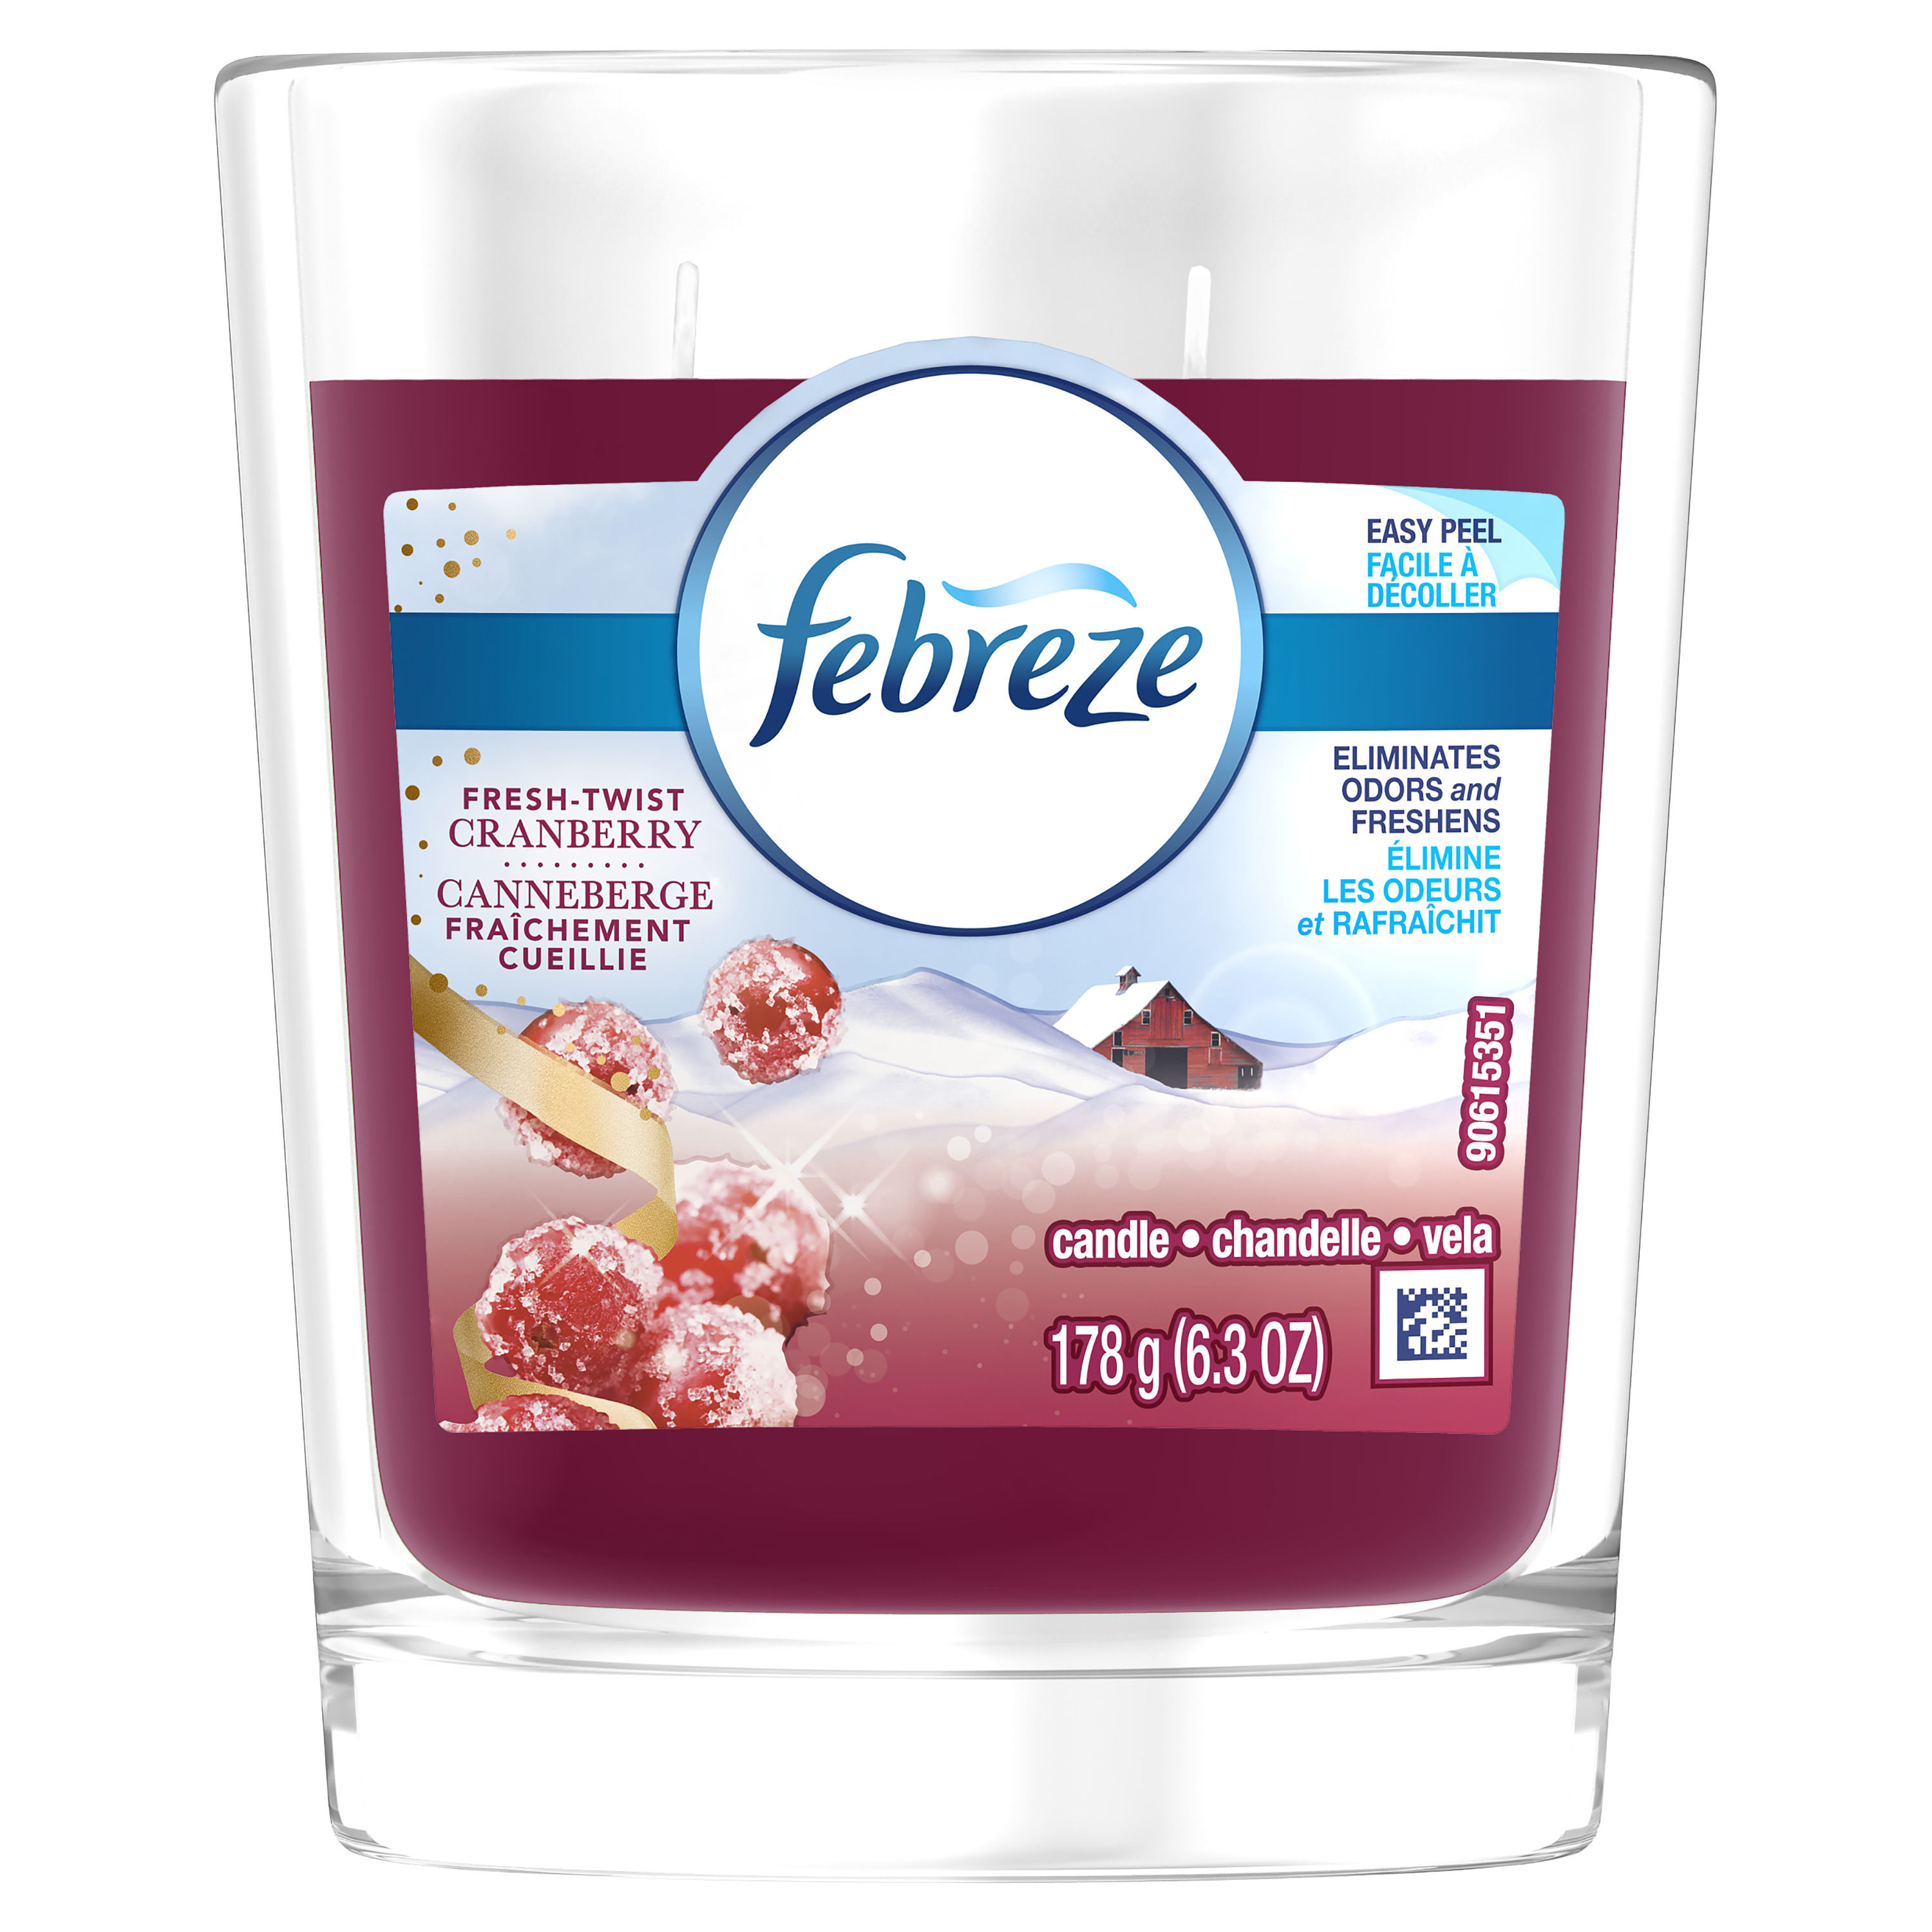 Febreze Candle, Fresh-Twist Cranberry, 6.3 oz by Procter & Gamble